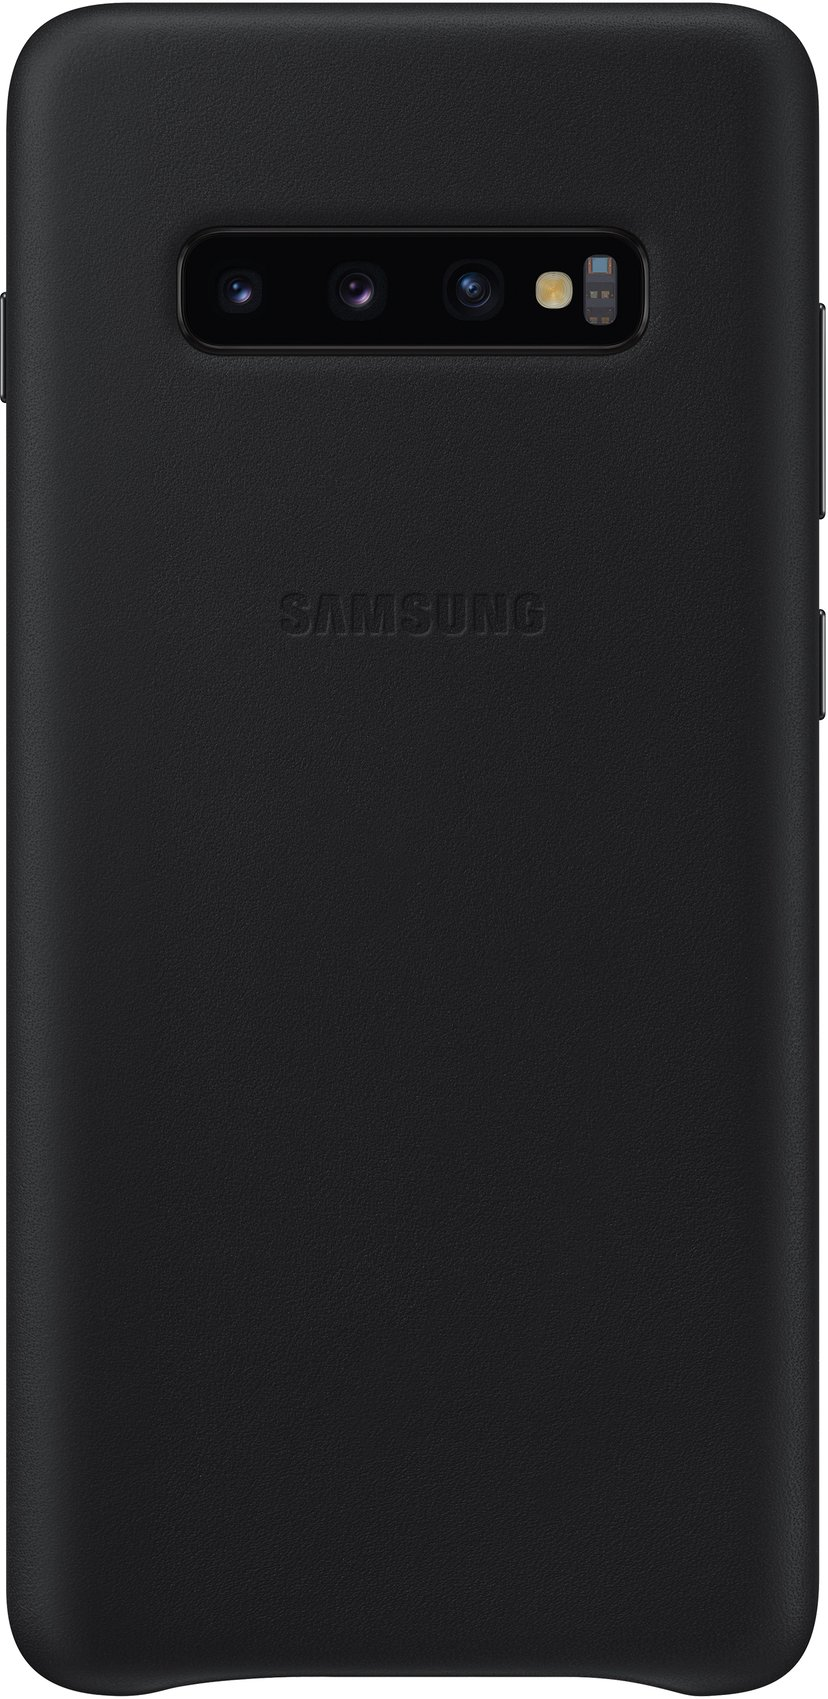 Samsung Leather Cover EF-VG975 Samsung Galaxy S10+ Svart